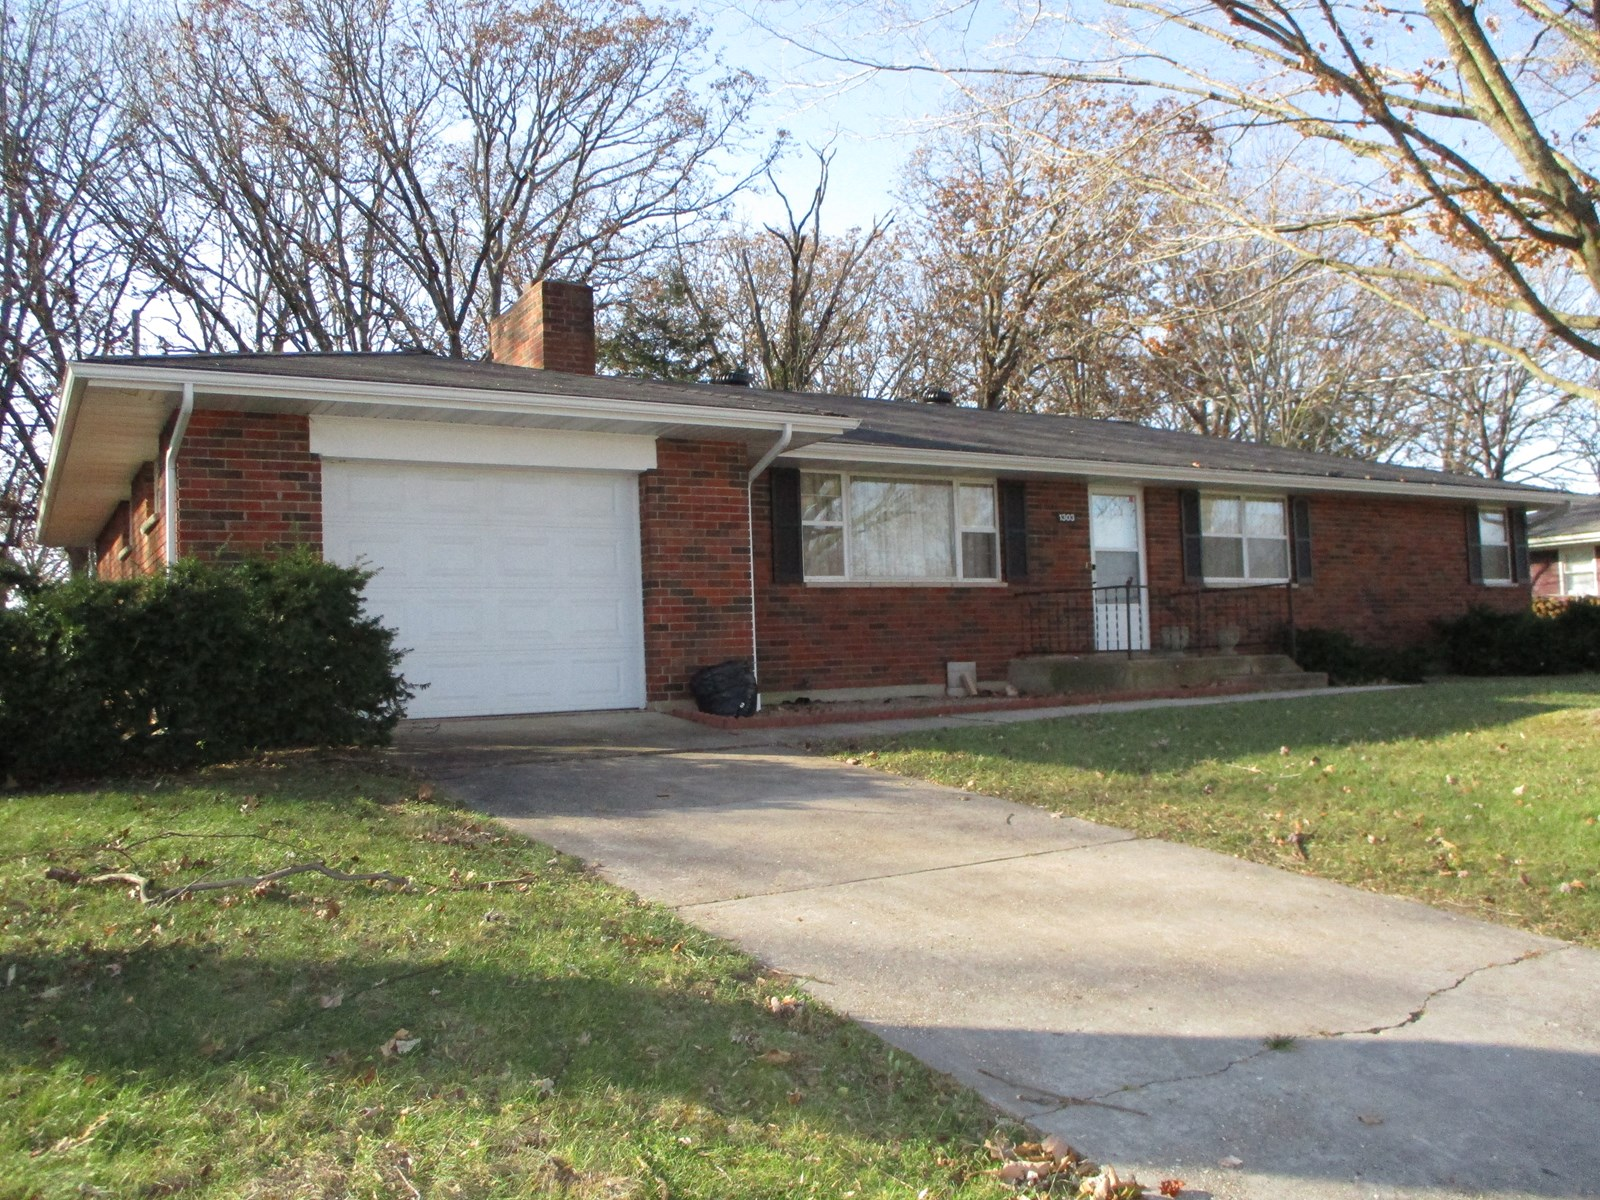 3 bedroom home move in ready in Salem!